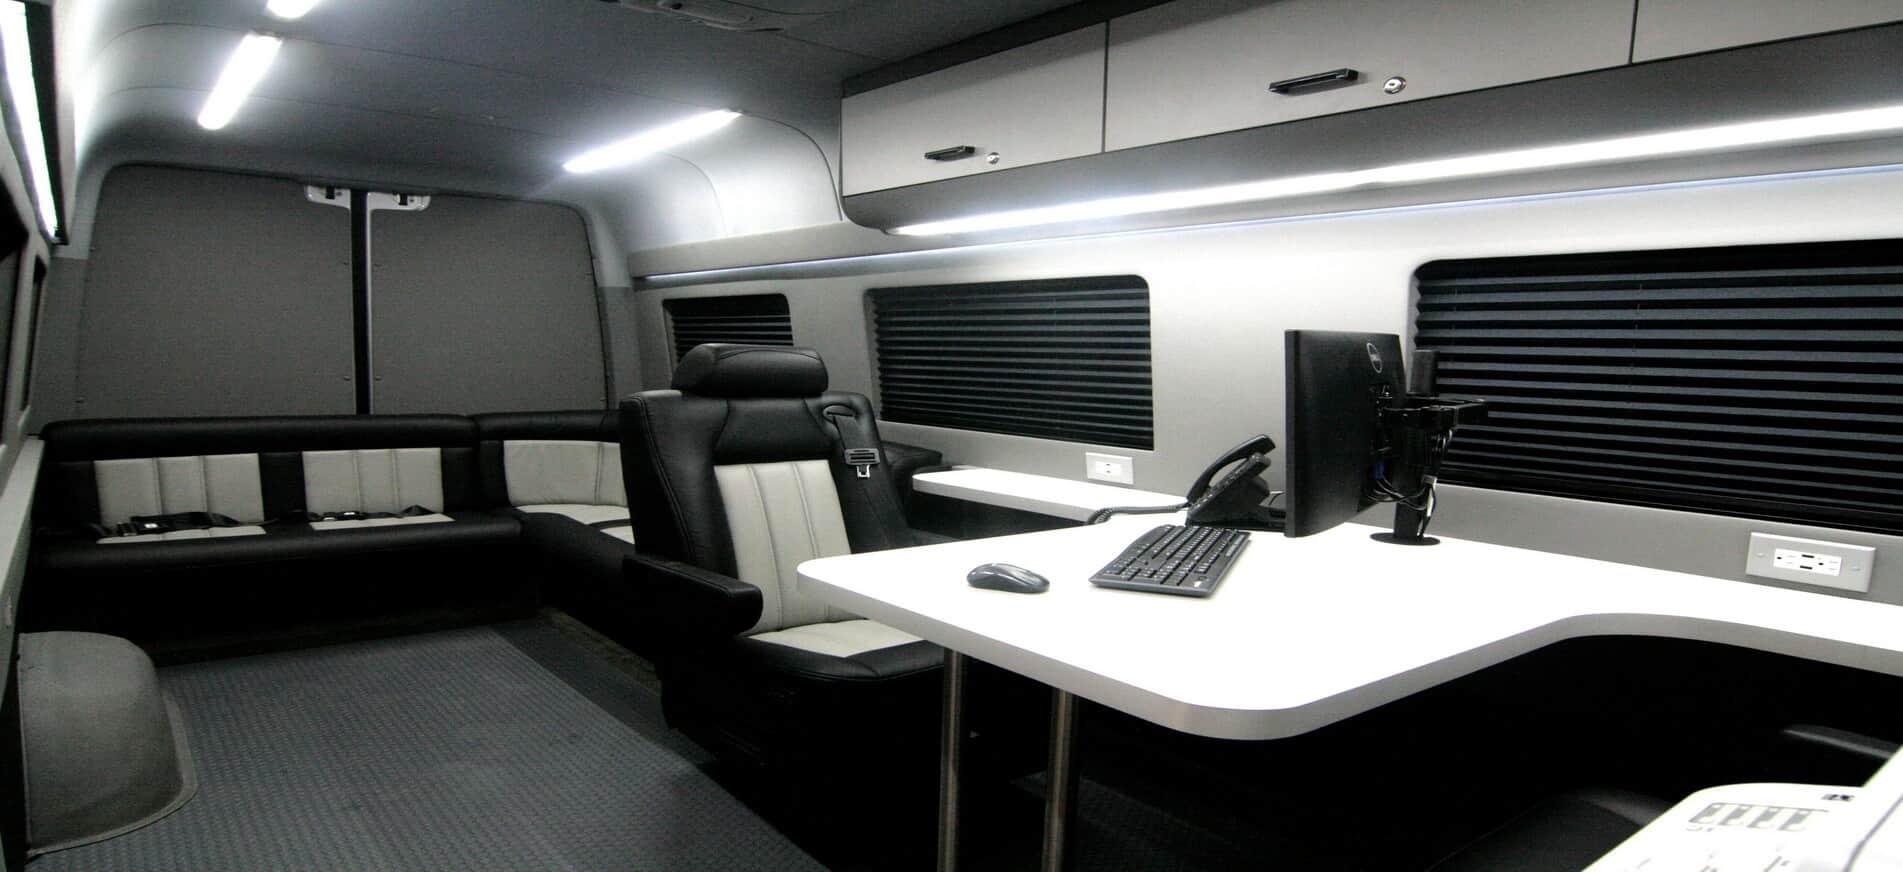 Professional Vehicles - Mobile Offices